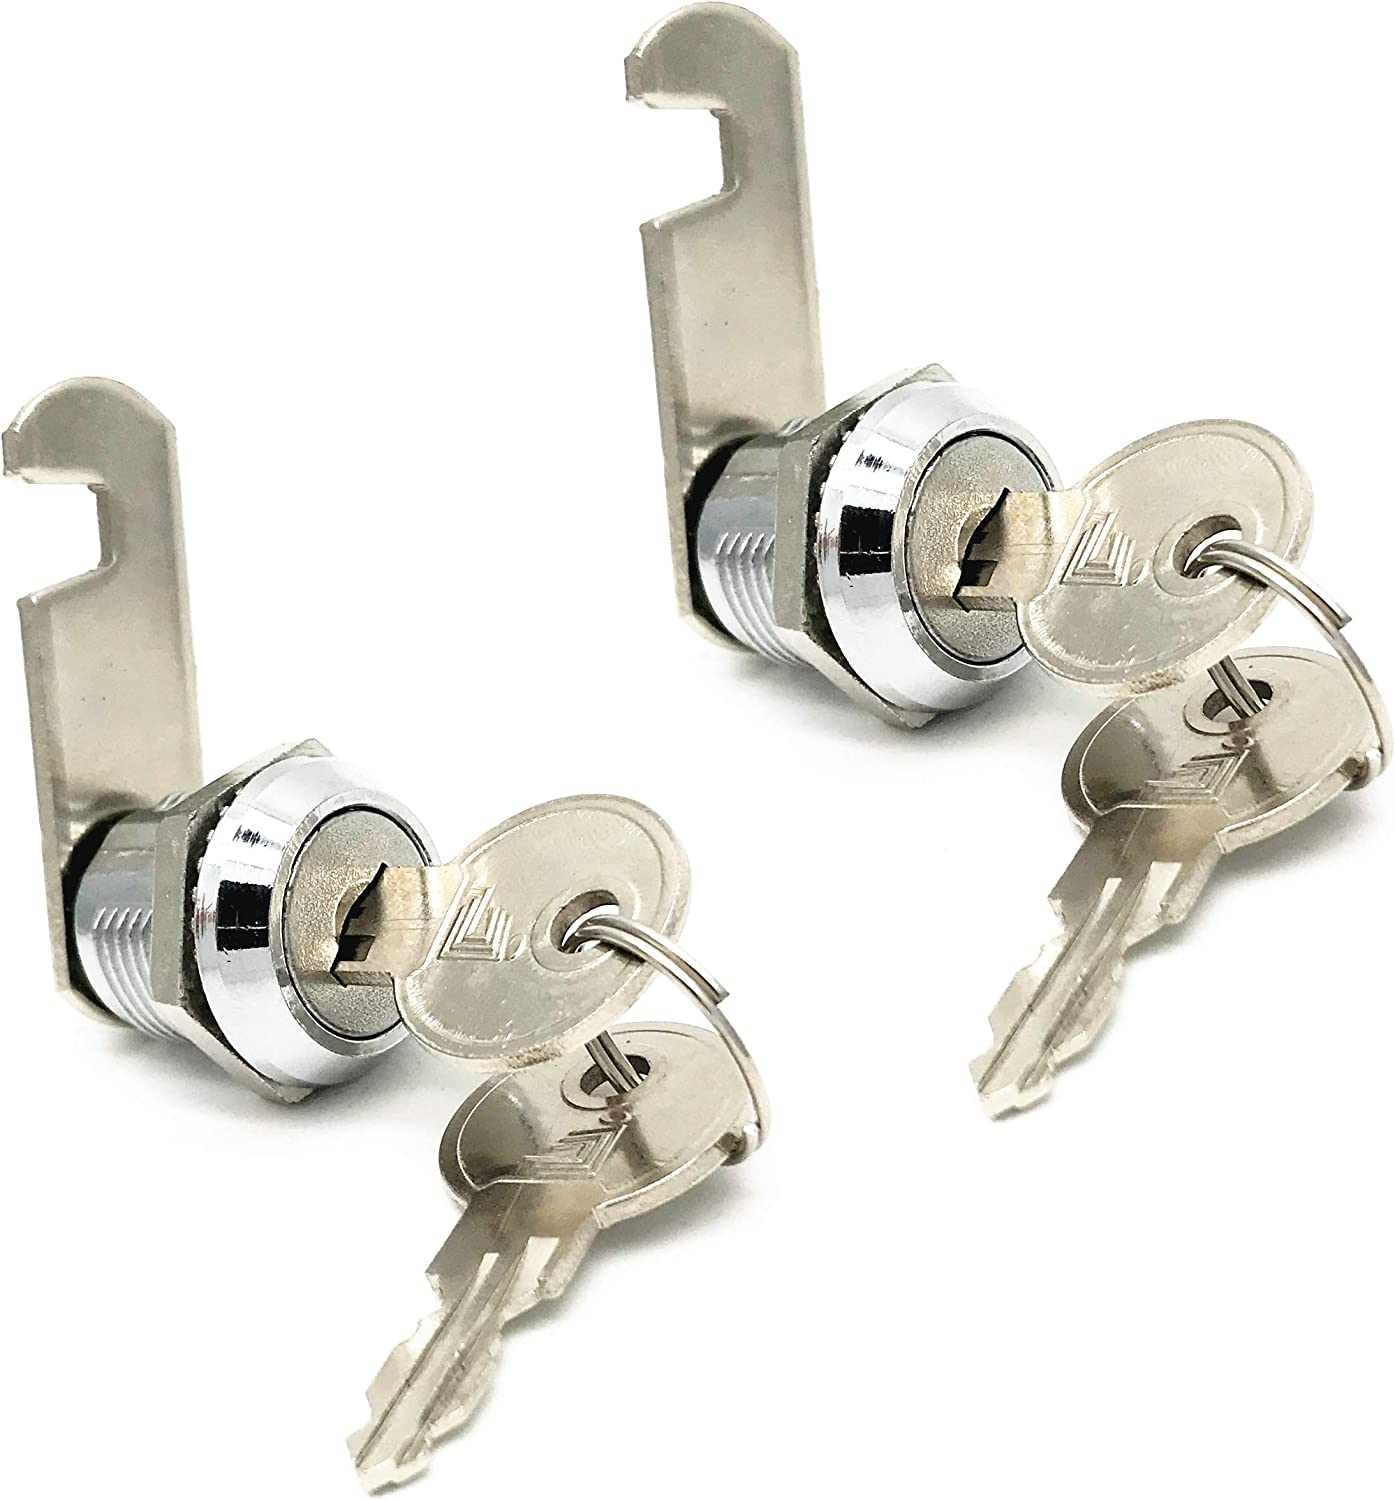 XMHF 16mm Cylinder Cam Lock Mailbox Cabinet Cupboard Drawer Furniture Tool Box Locker,90 Degree Rotation,Opens Counter-Clockwise, Keyed Different, 2Pcs